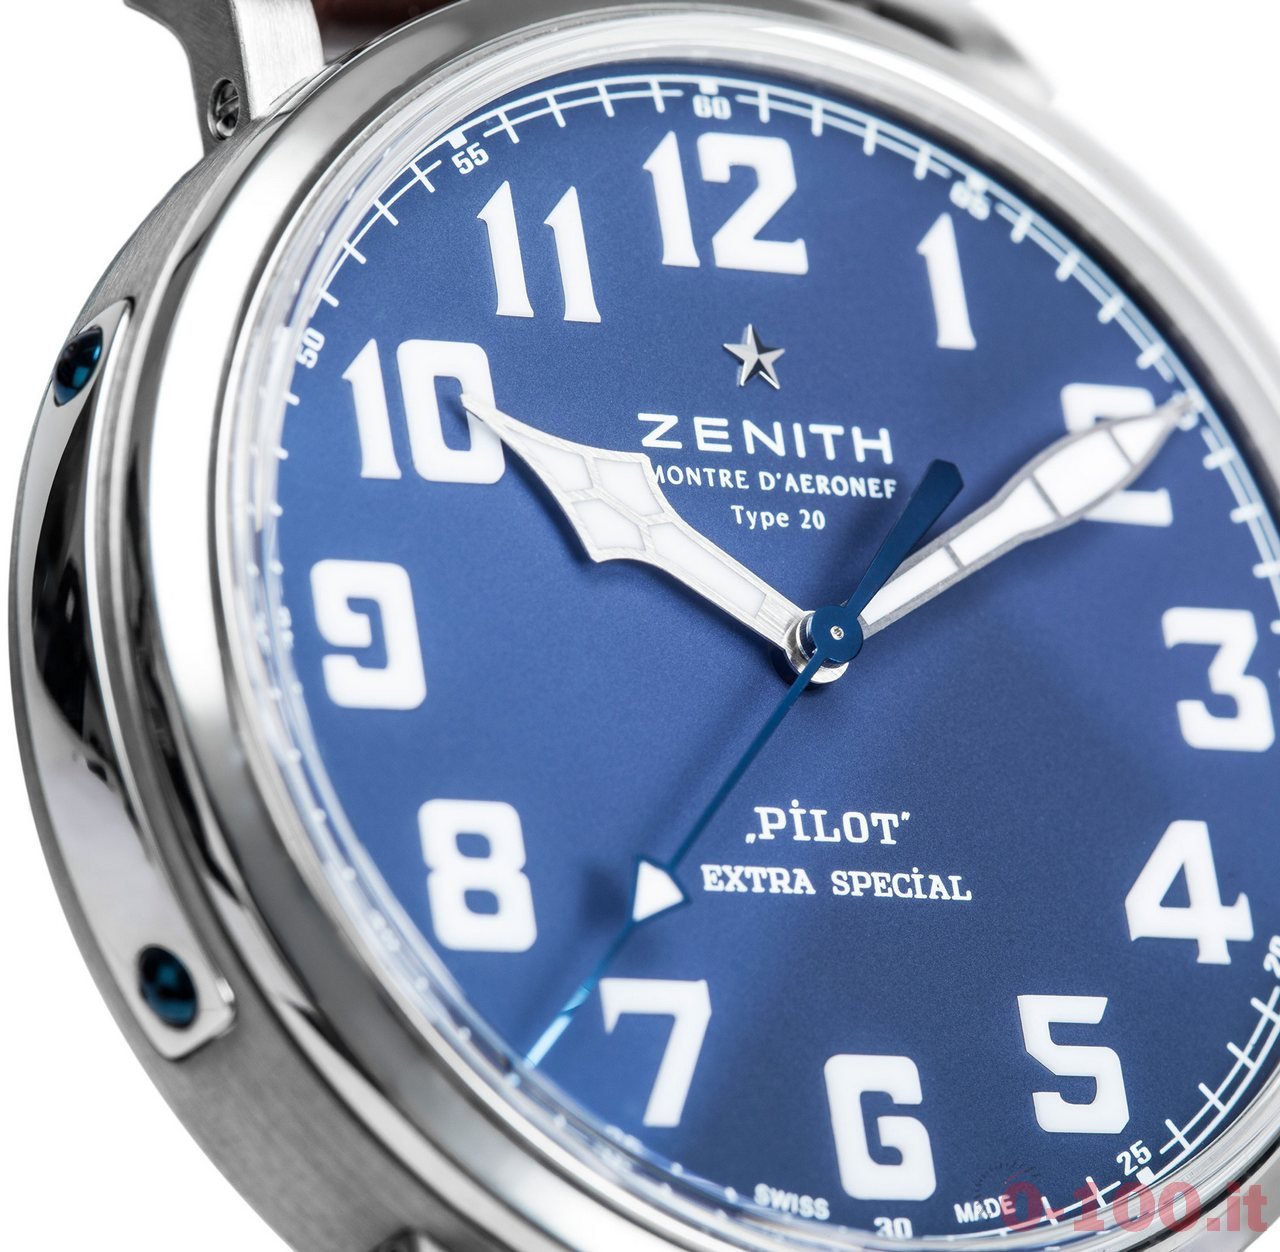 zenith-pilot-type-20-extra-special-blue-limited-edition-the-watch-gallery-prezzo-price_0-1004